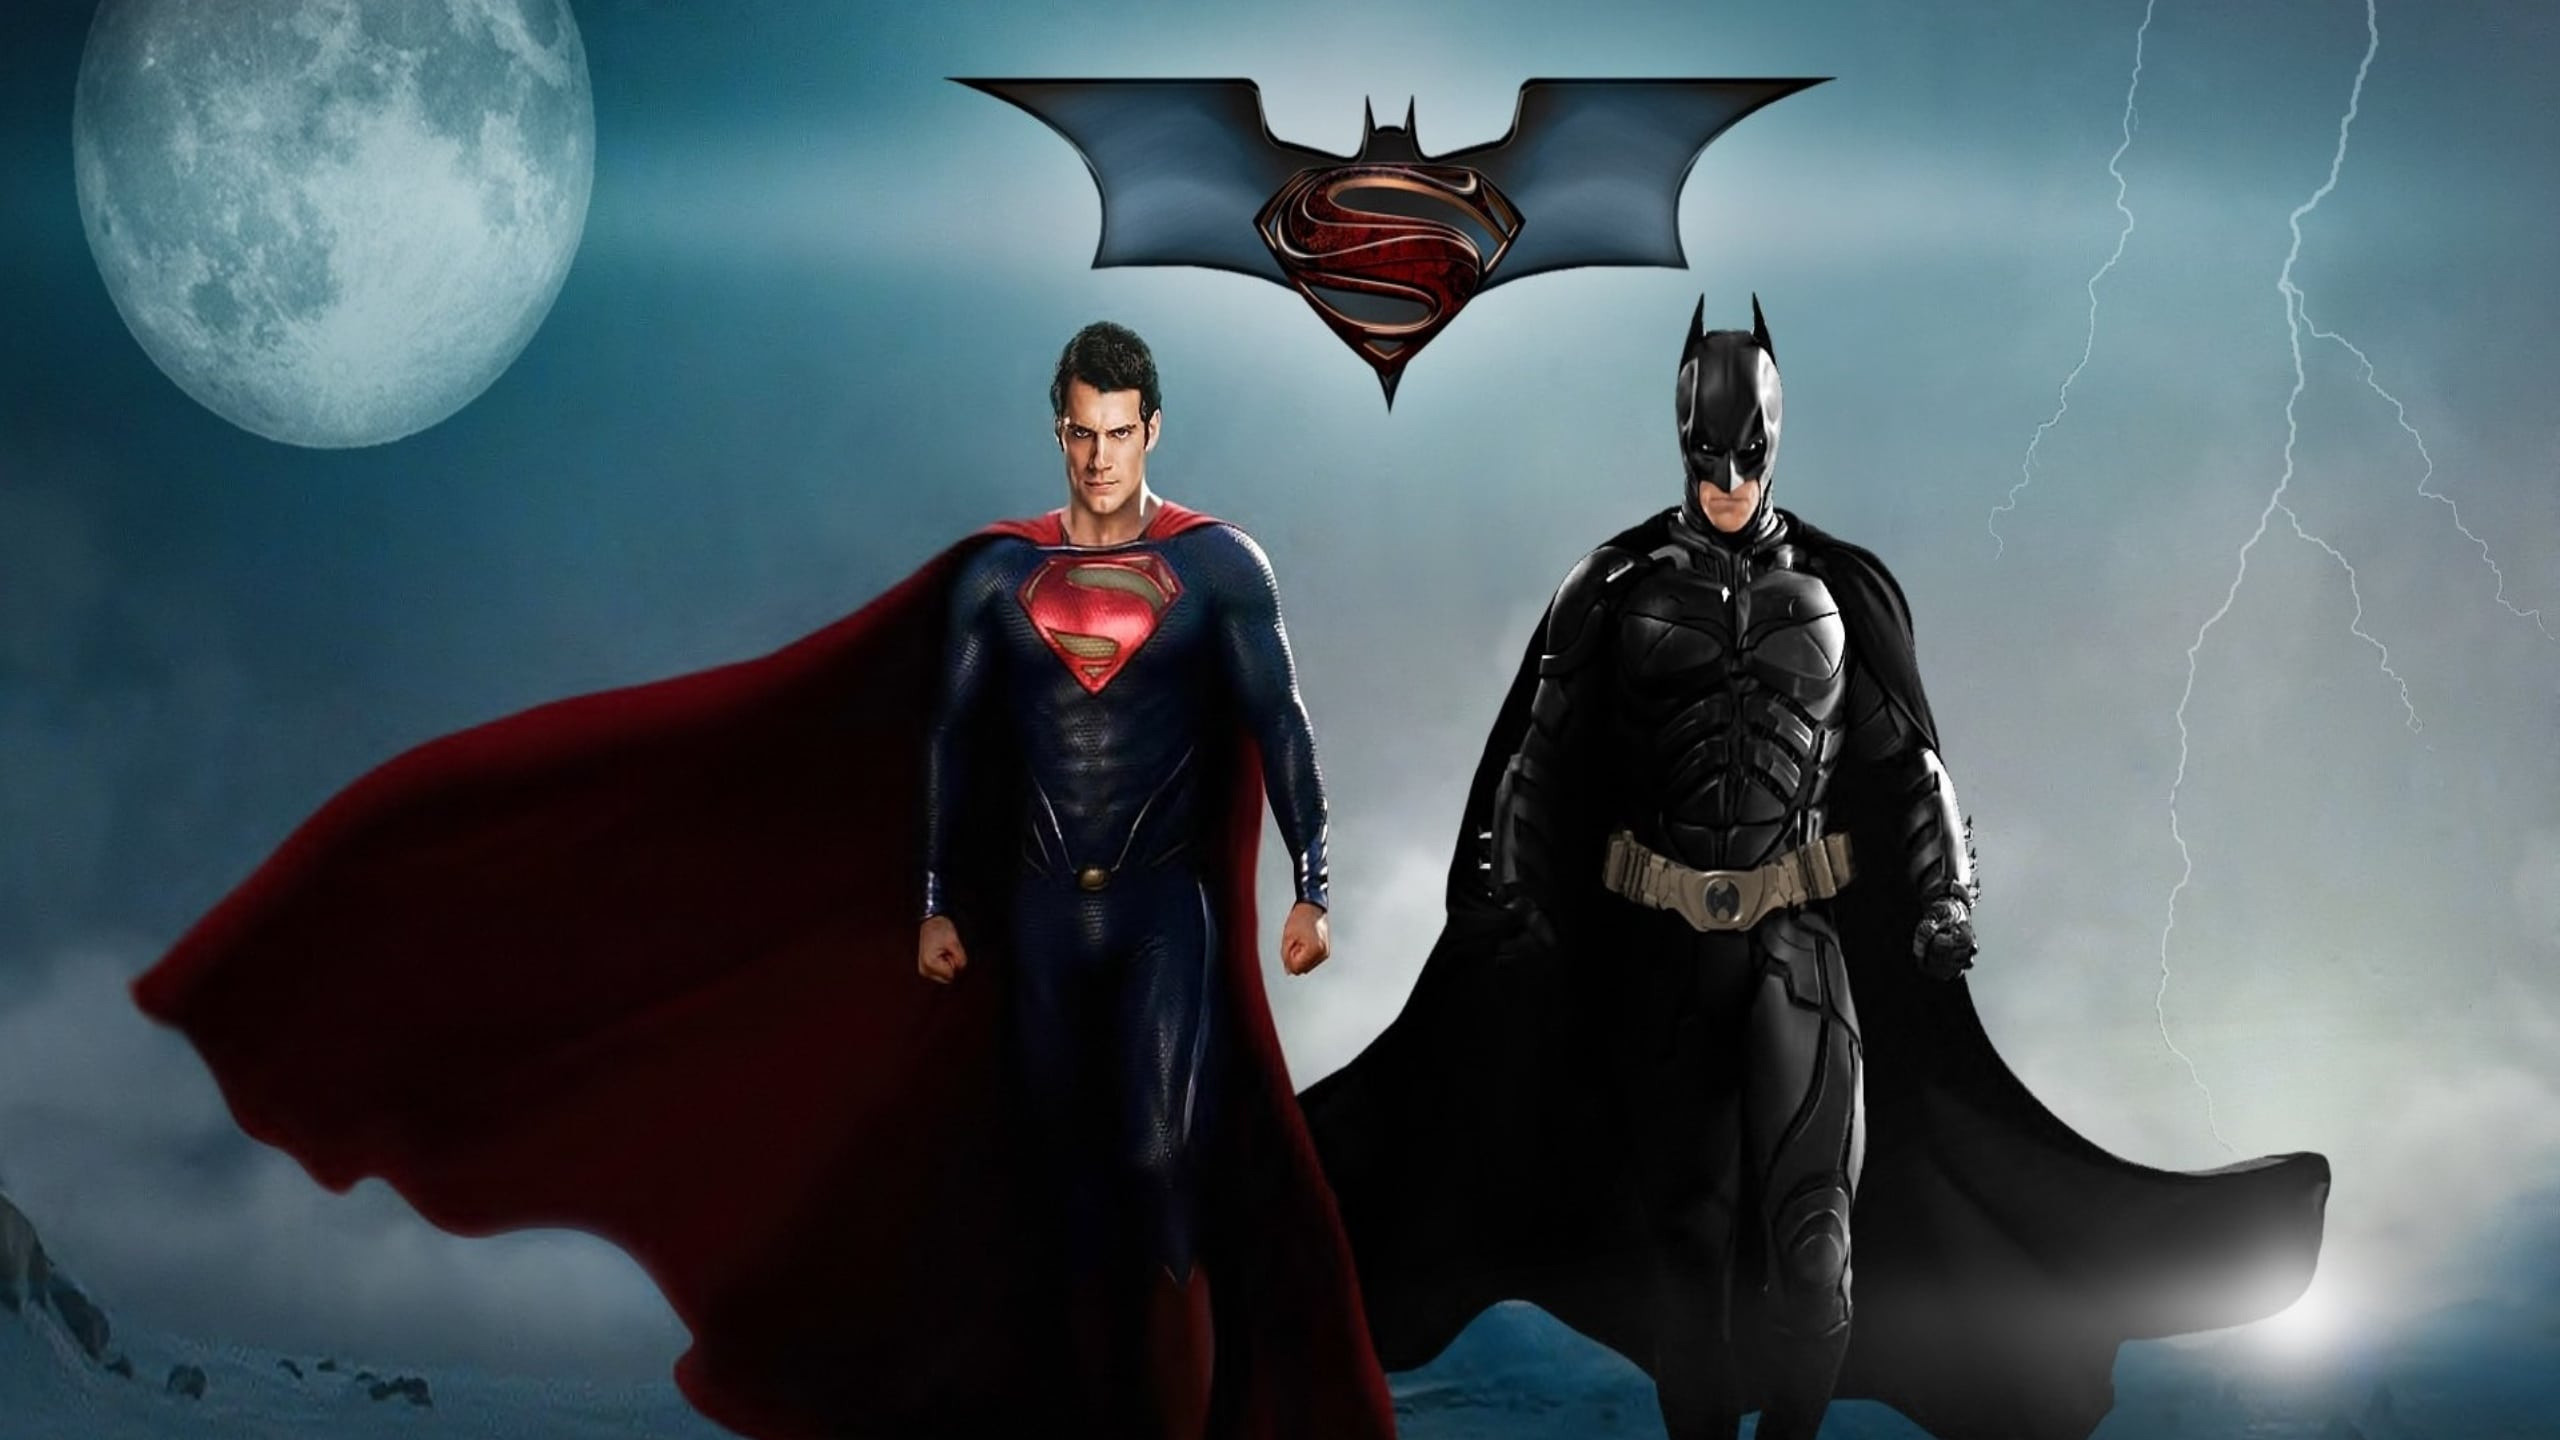 Res: 2560x1440, Fictional Character, End of The World, Superman, Doomsday, Film Wallpaper  in